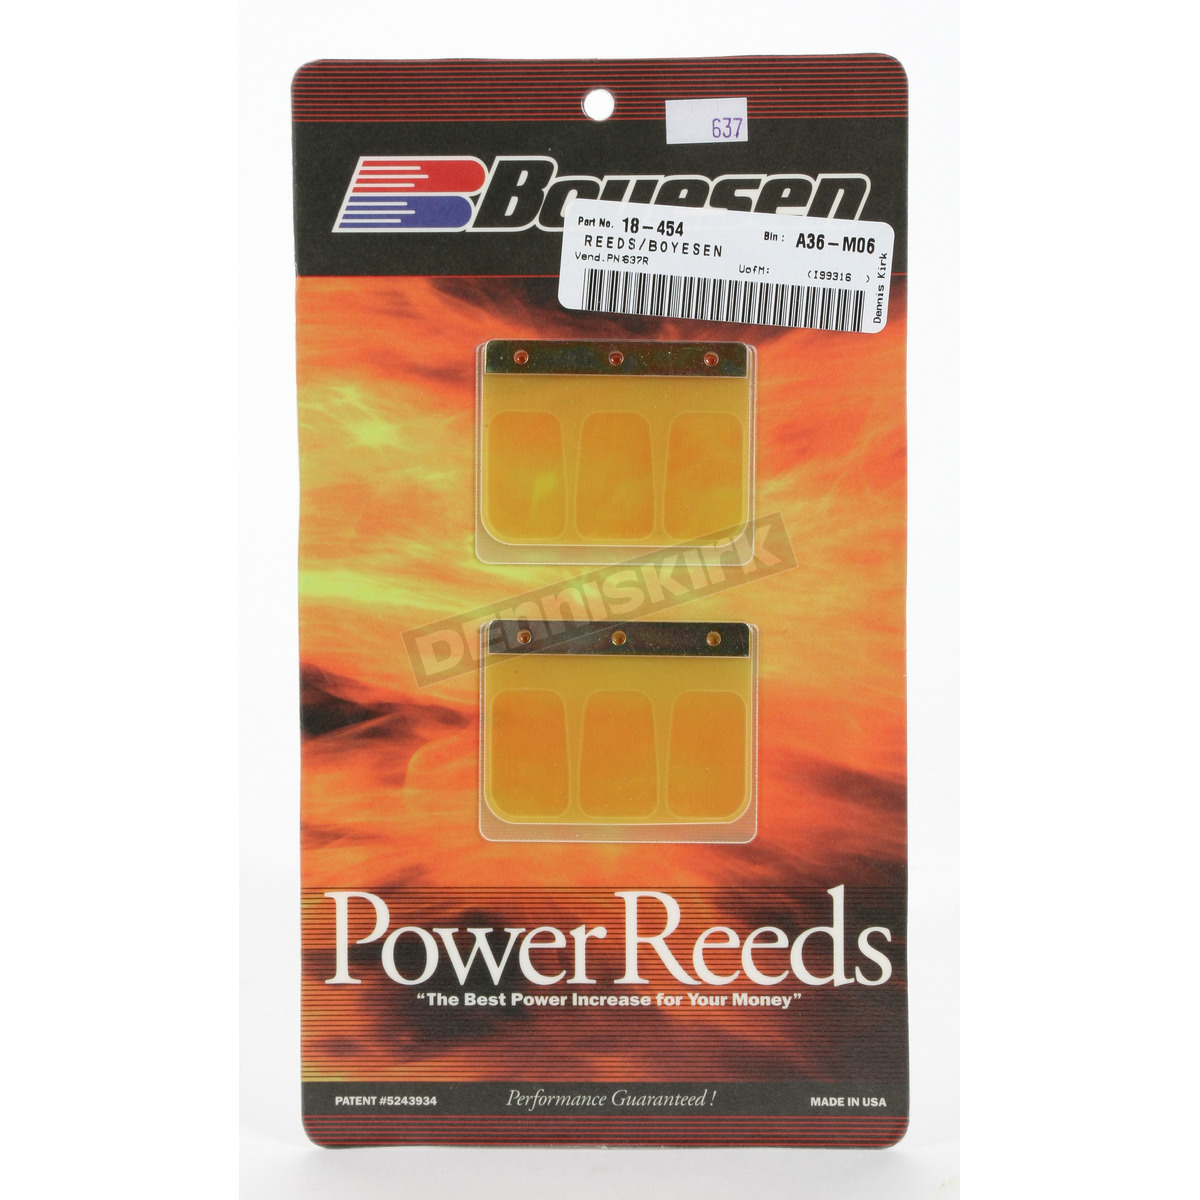 Suzuki Power Reed Kit RM 250 1989-1990 Boyesen Motorcycle 637